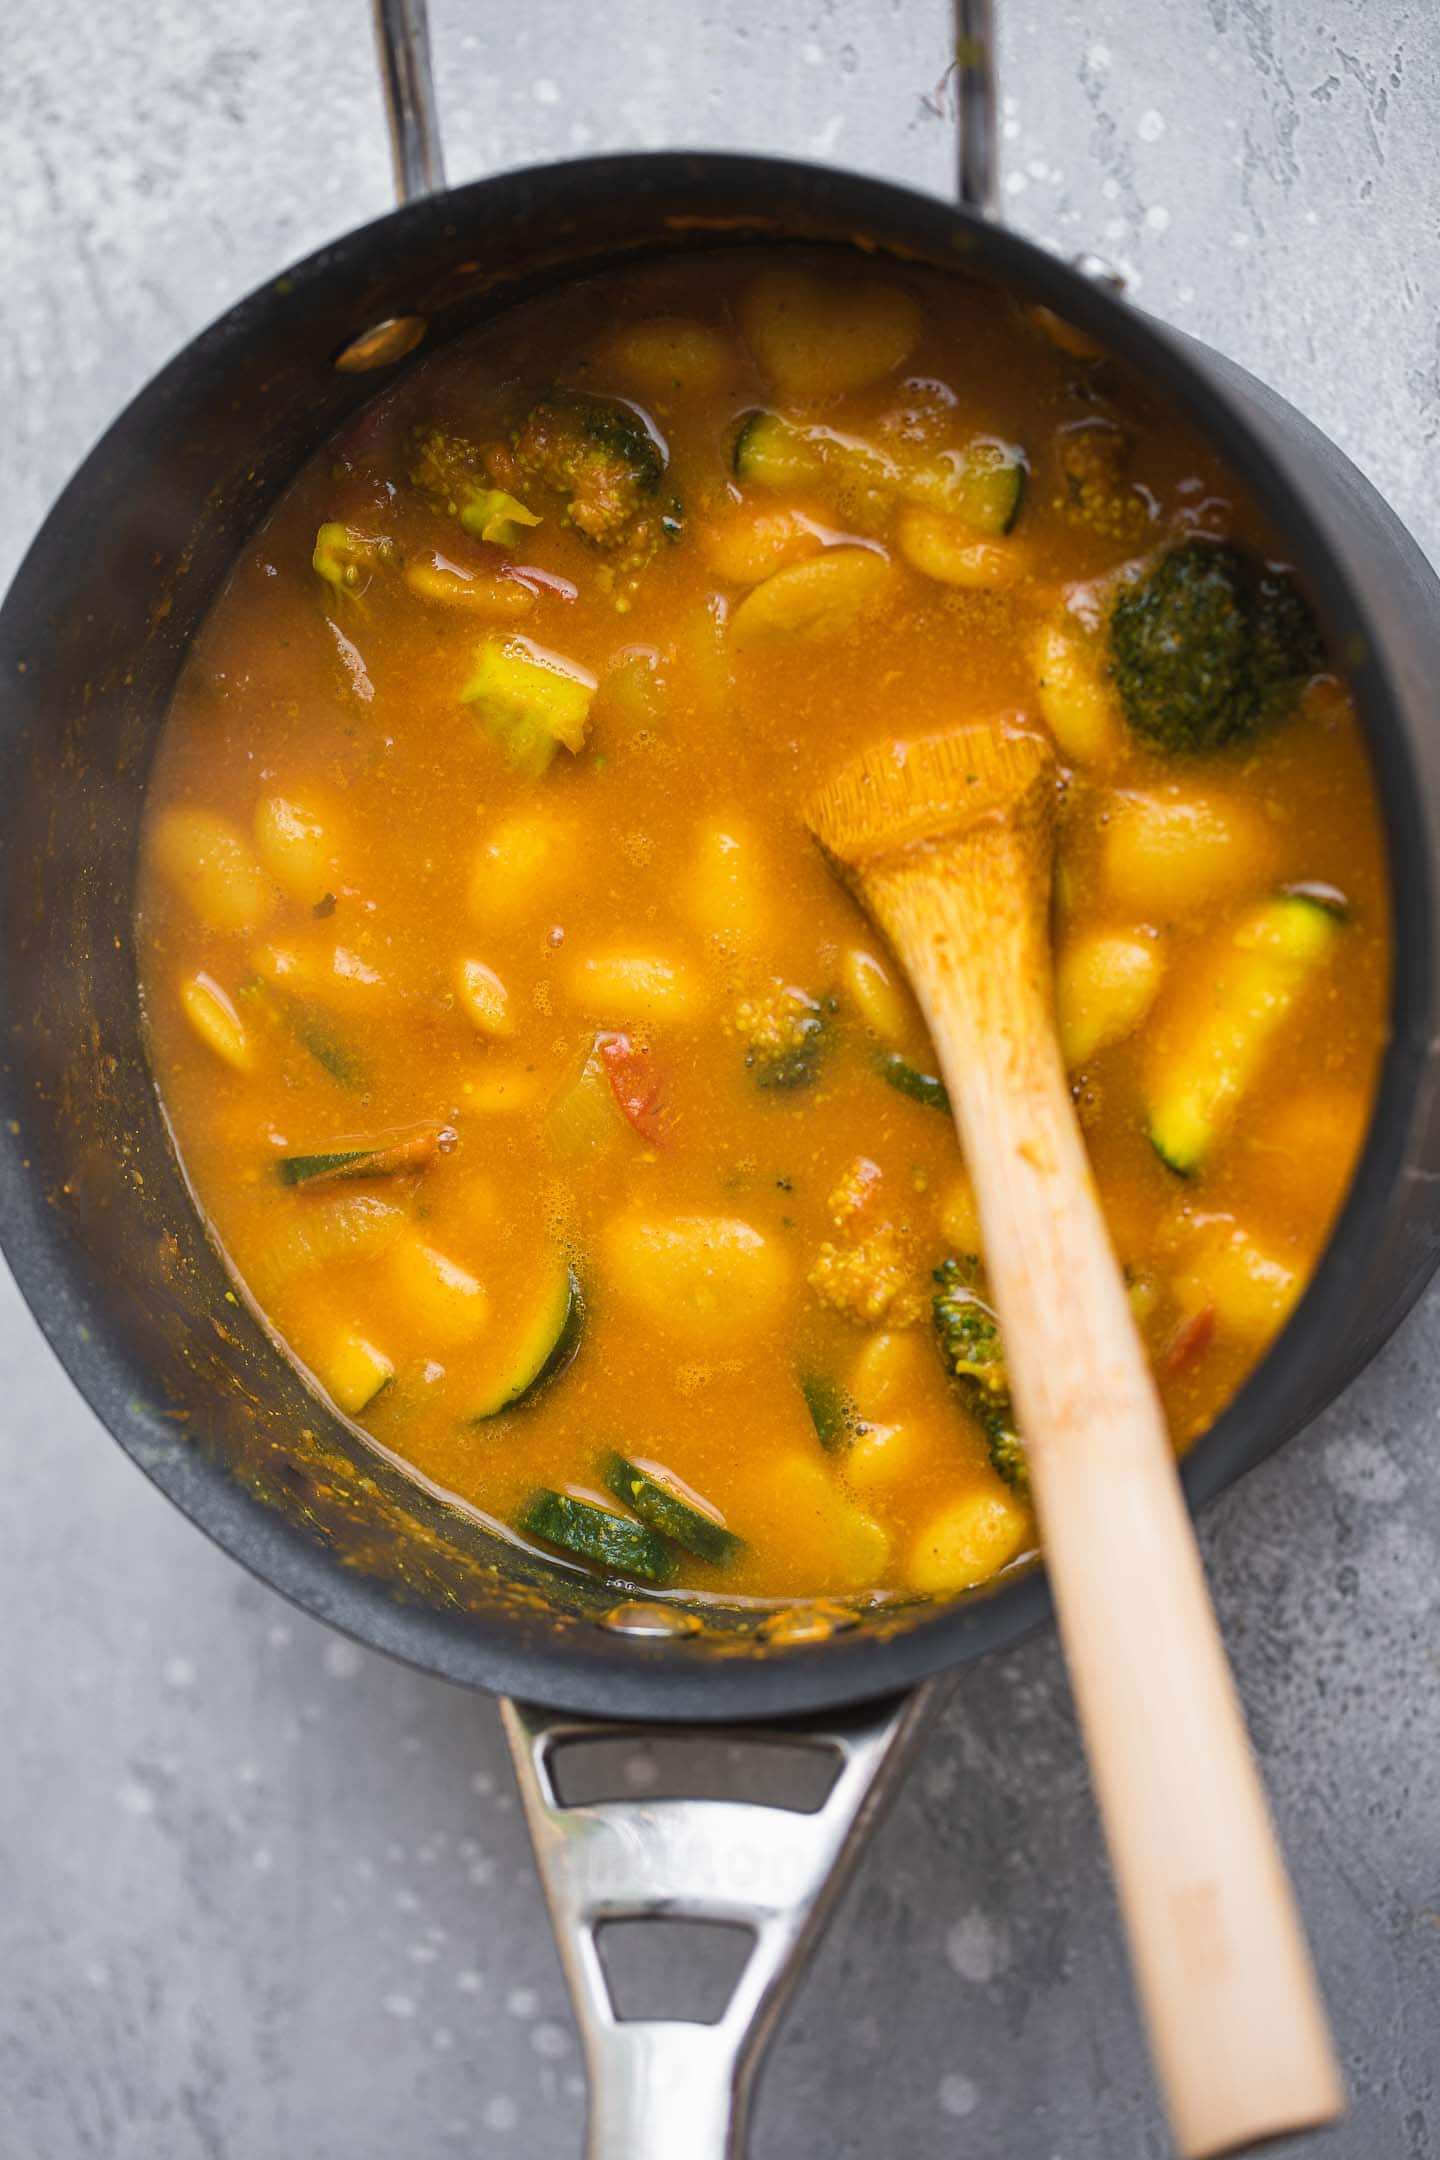 Stew with butter beans in a saucepan